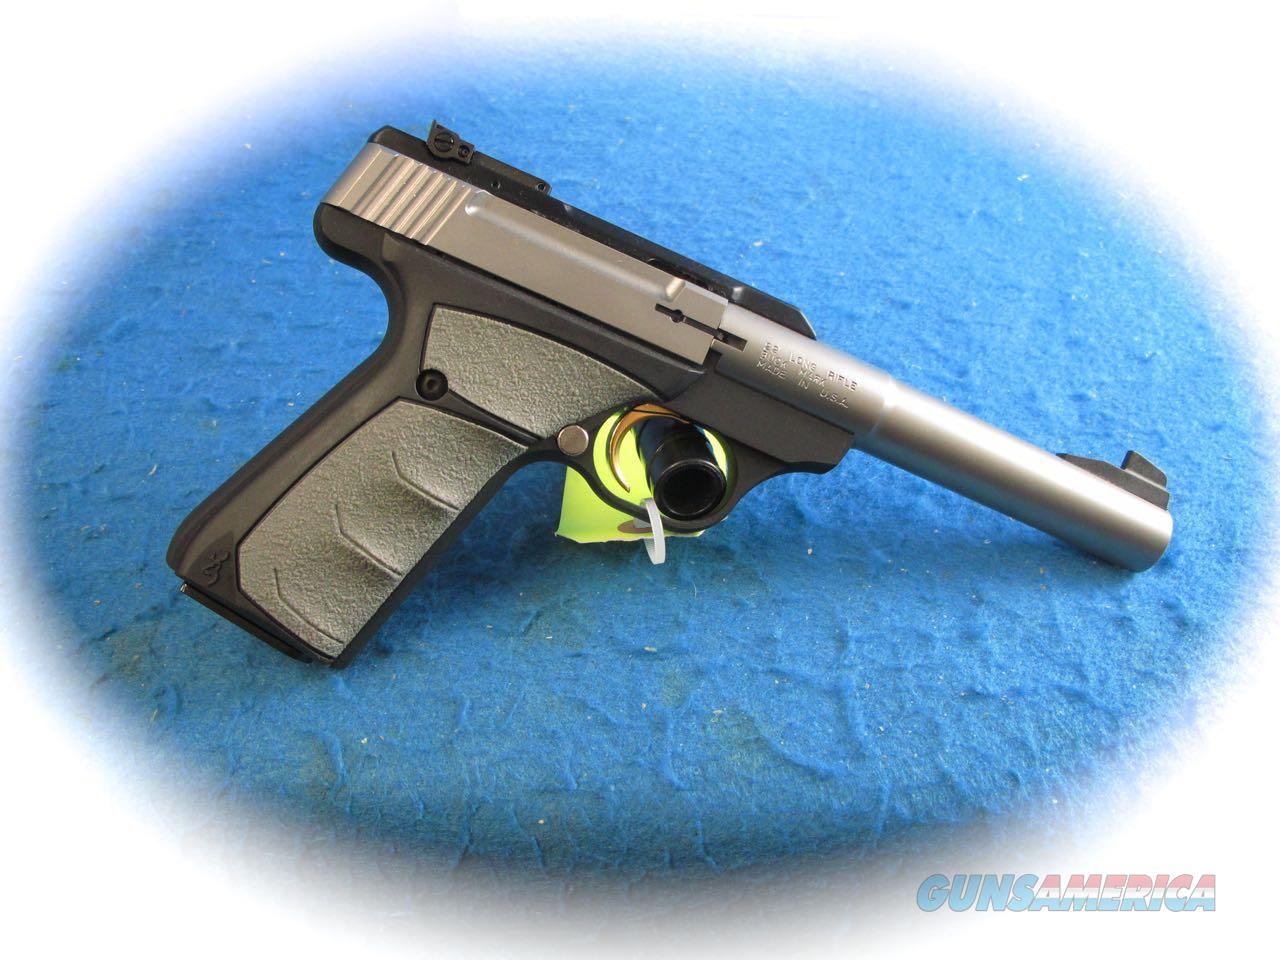 Browning Buck Mark Camper .22 LR Semi Auto Pistol Model 051483490 **New**  Guns > Pistols > Browning Pistols > Buckmark